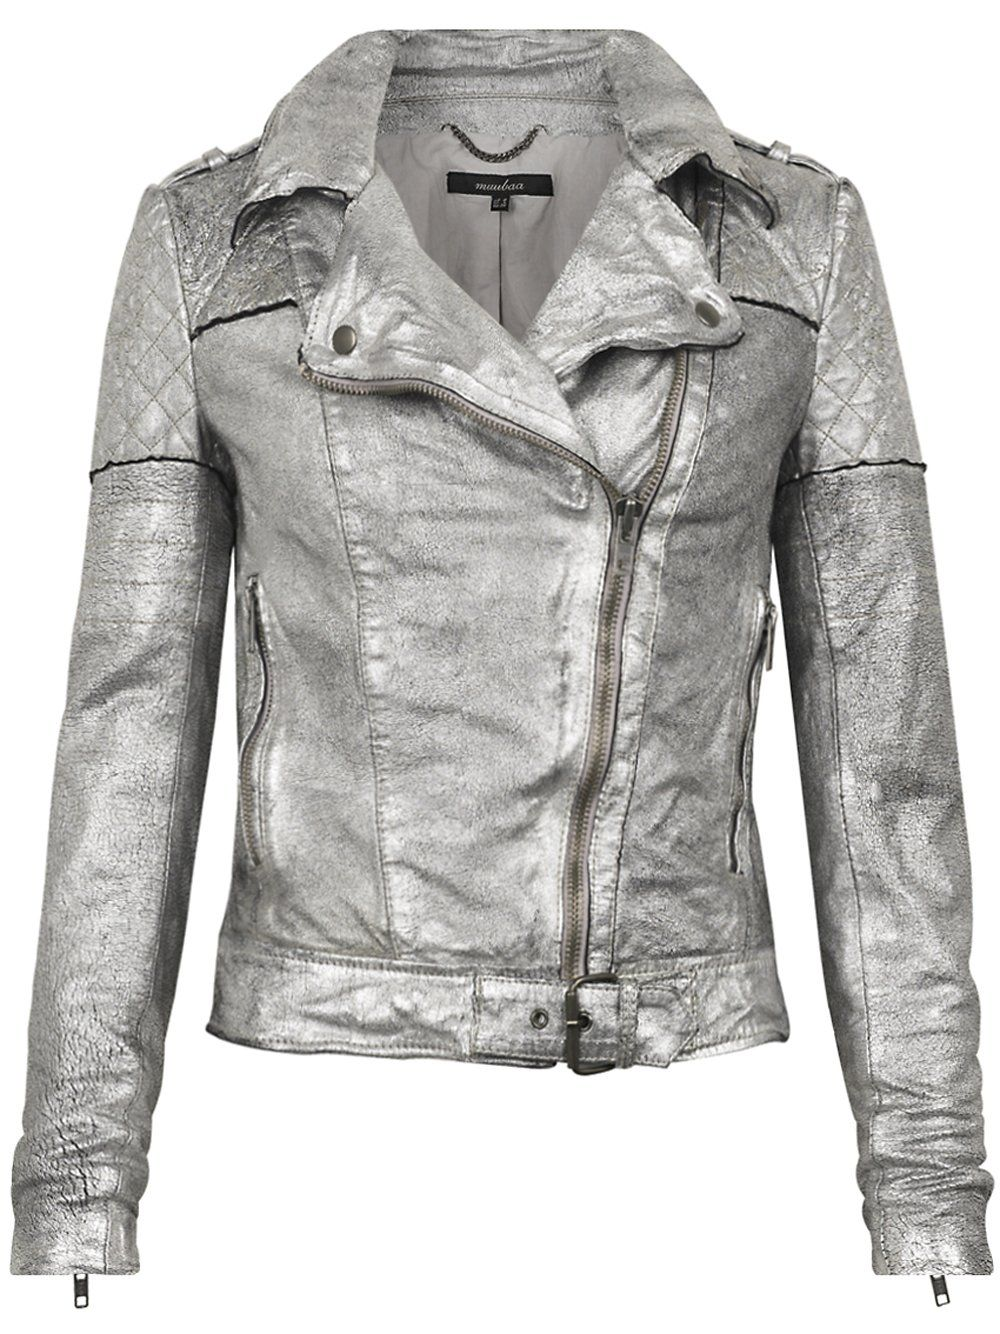 Minsk Suede Quilted Biker In Silver Muubaa Leather Jacket Silver Leather Jacket Clothes [ 1334 x 1000 Pixel ]